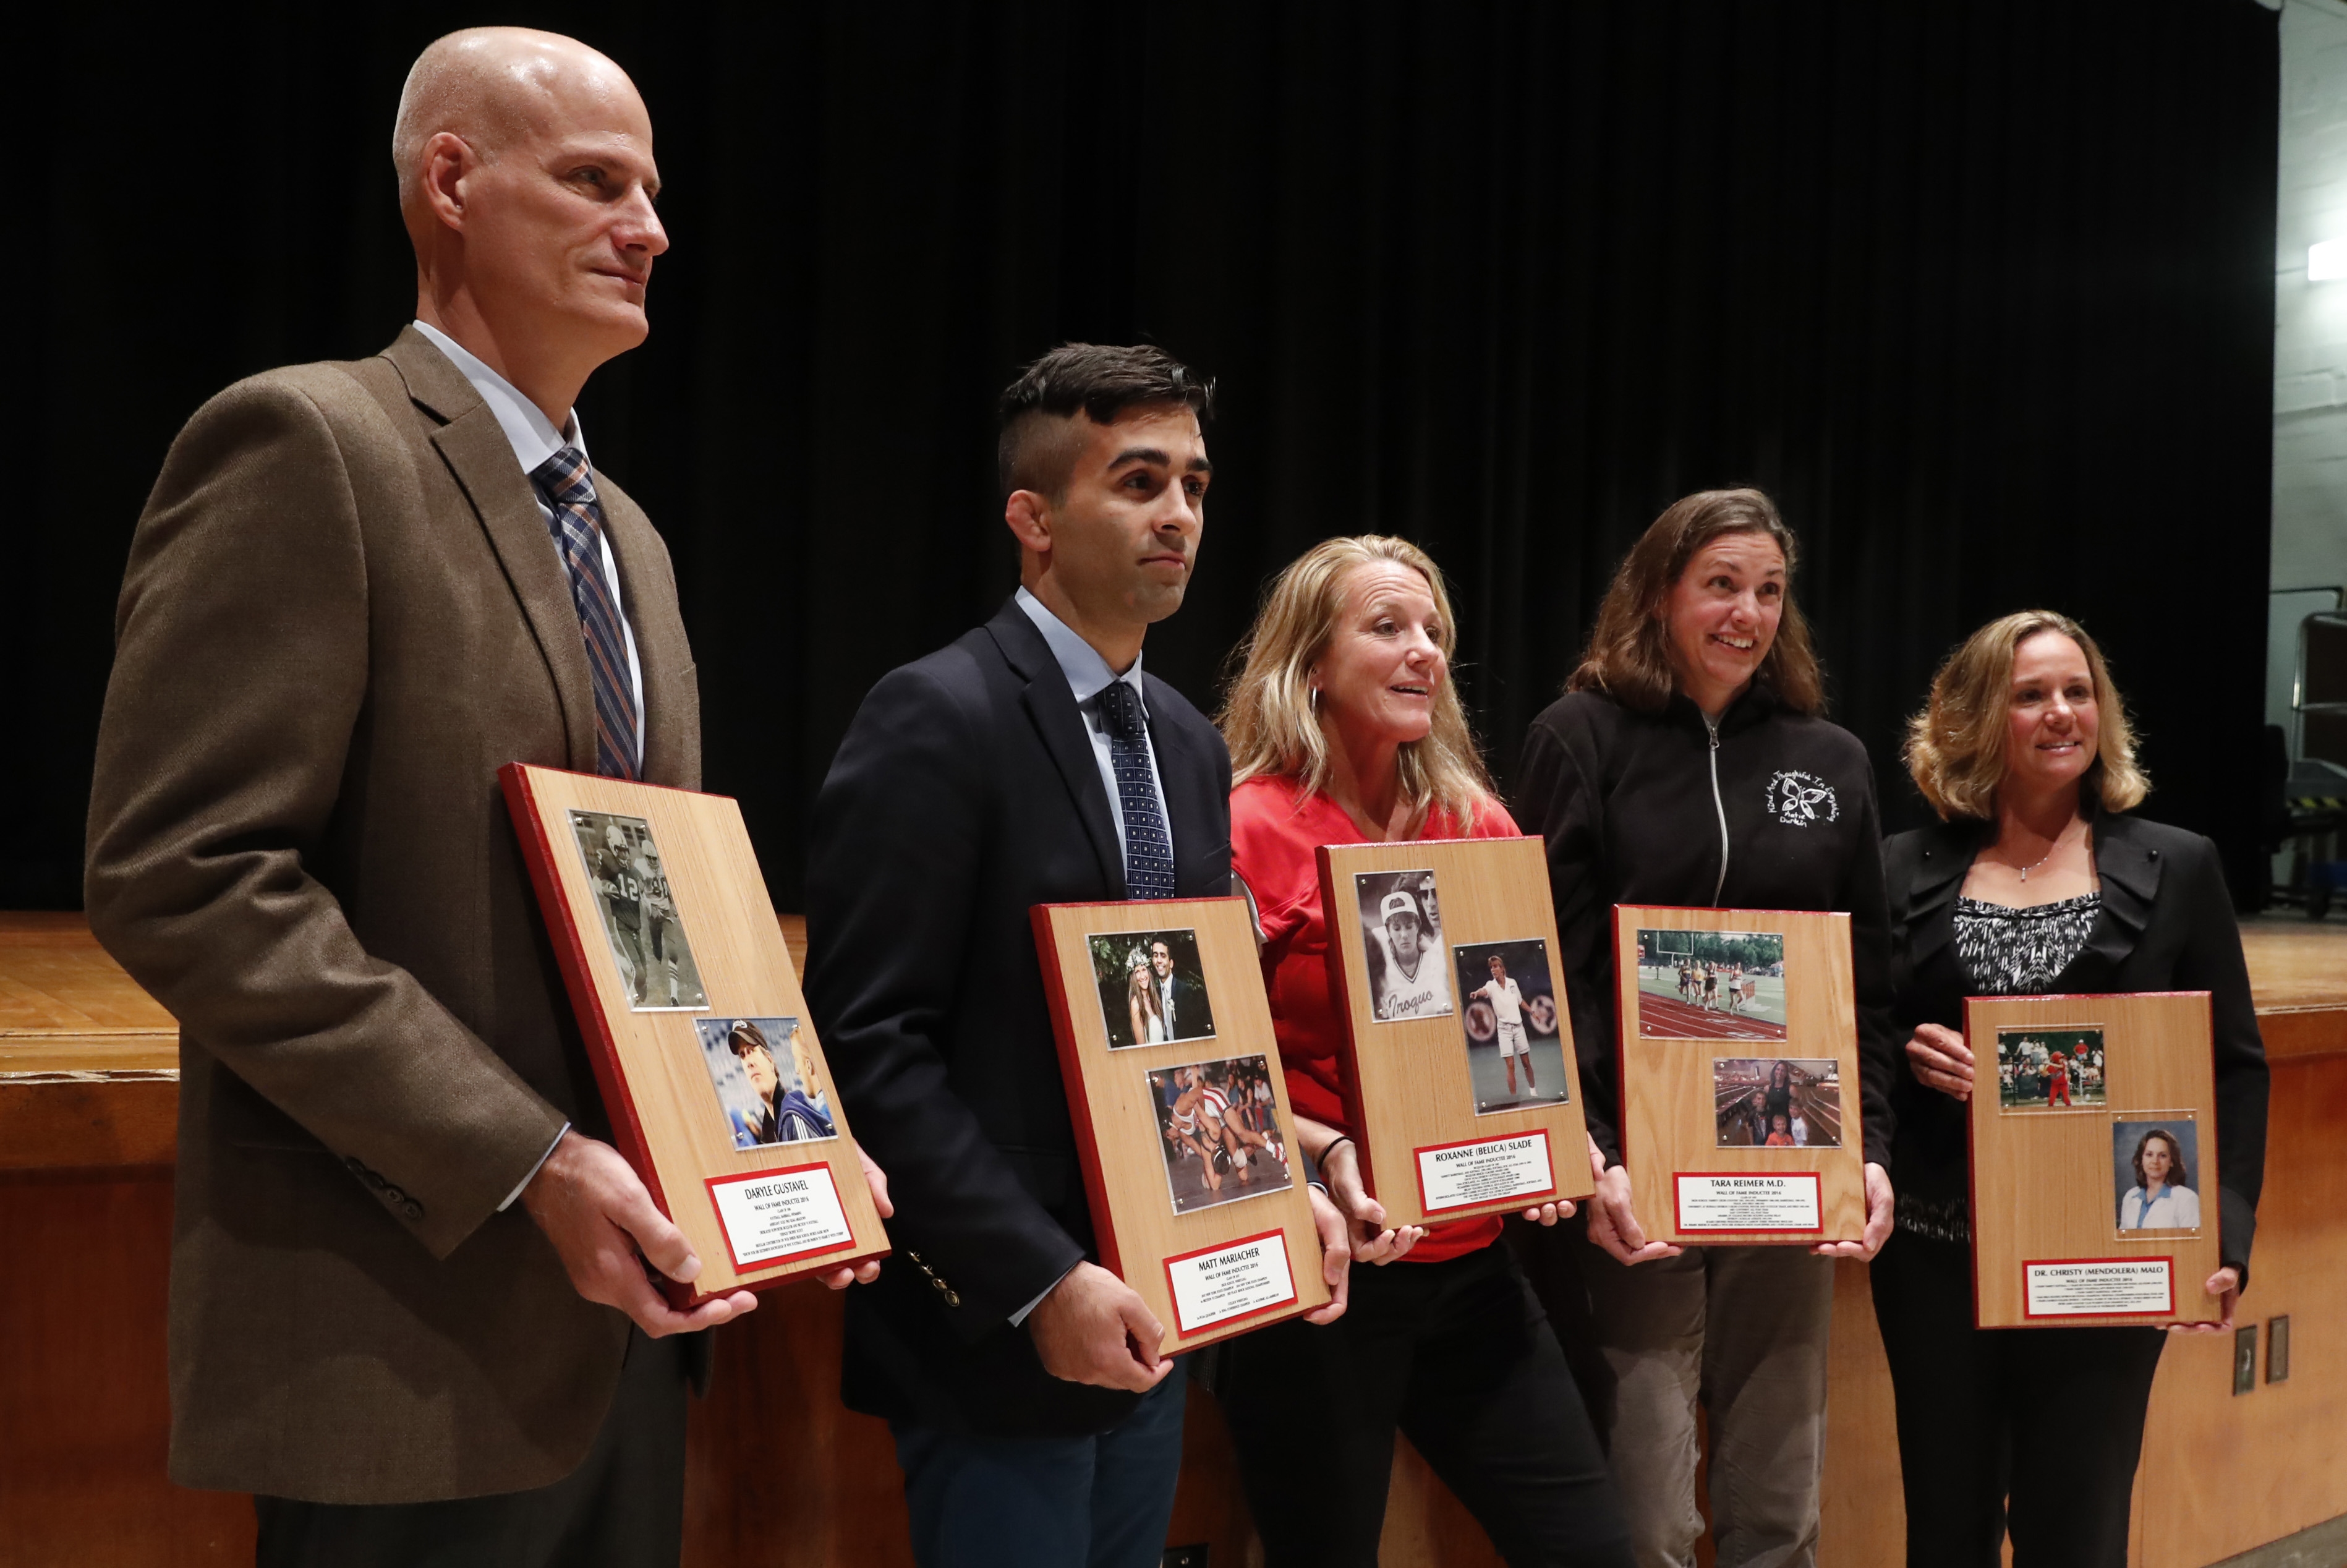 Inducted in the Iroquois Wall of Fame on Friday were Brian Gustavel (representing his brother Daryl), Matt Mariacher, Roxanne Slade, Tara Reimer and Christy Malo.